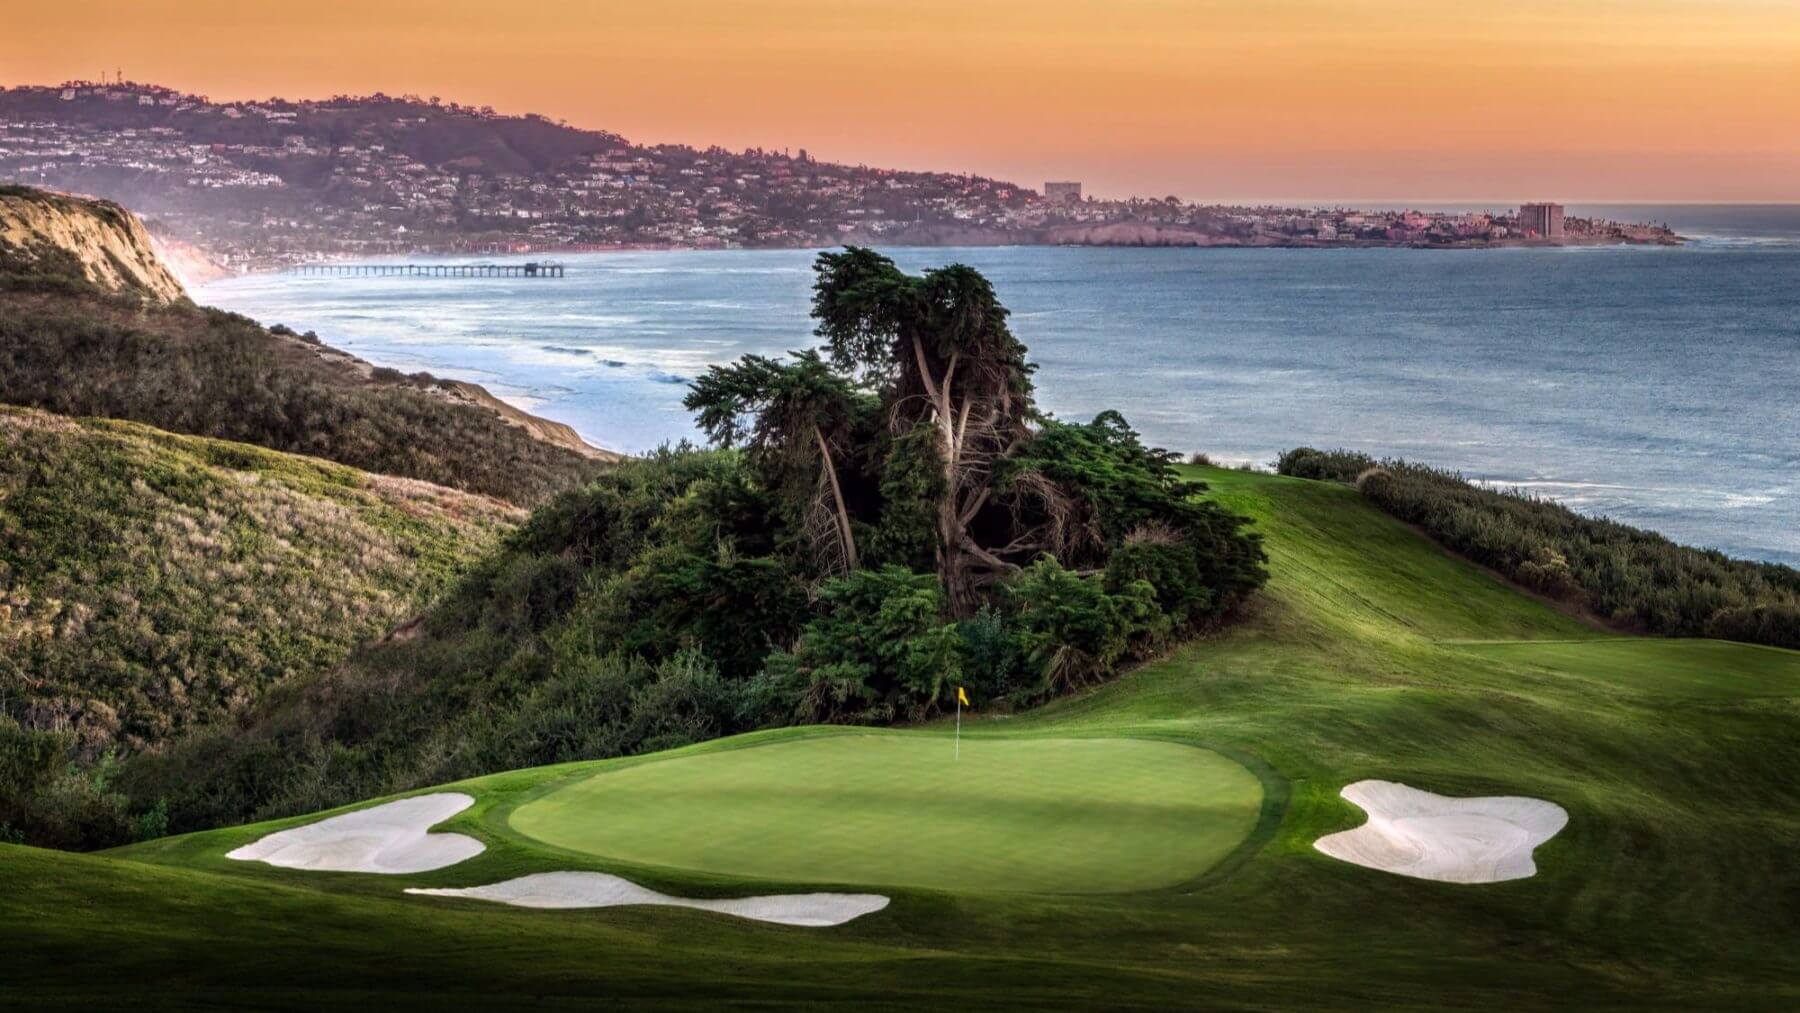 Torrey Pines fifteenth green with San Diego city views